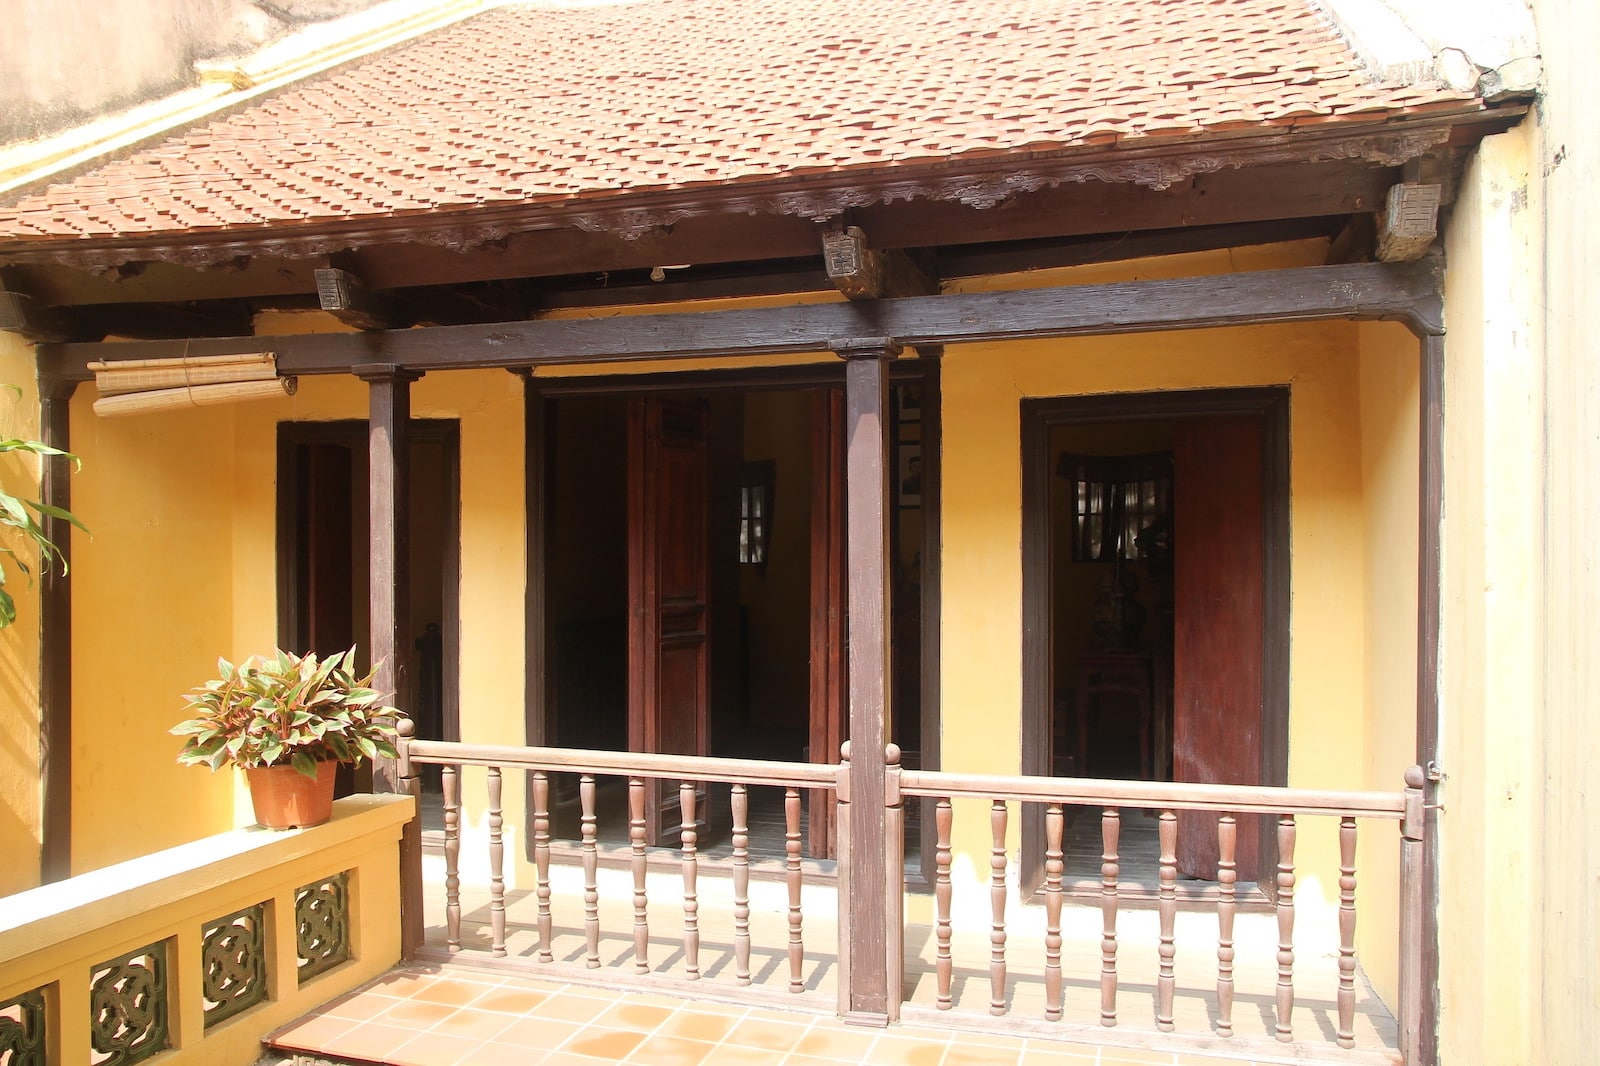 Image of the Ancient House in Hanoi, Vietnam